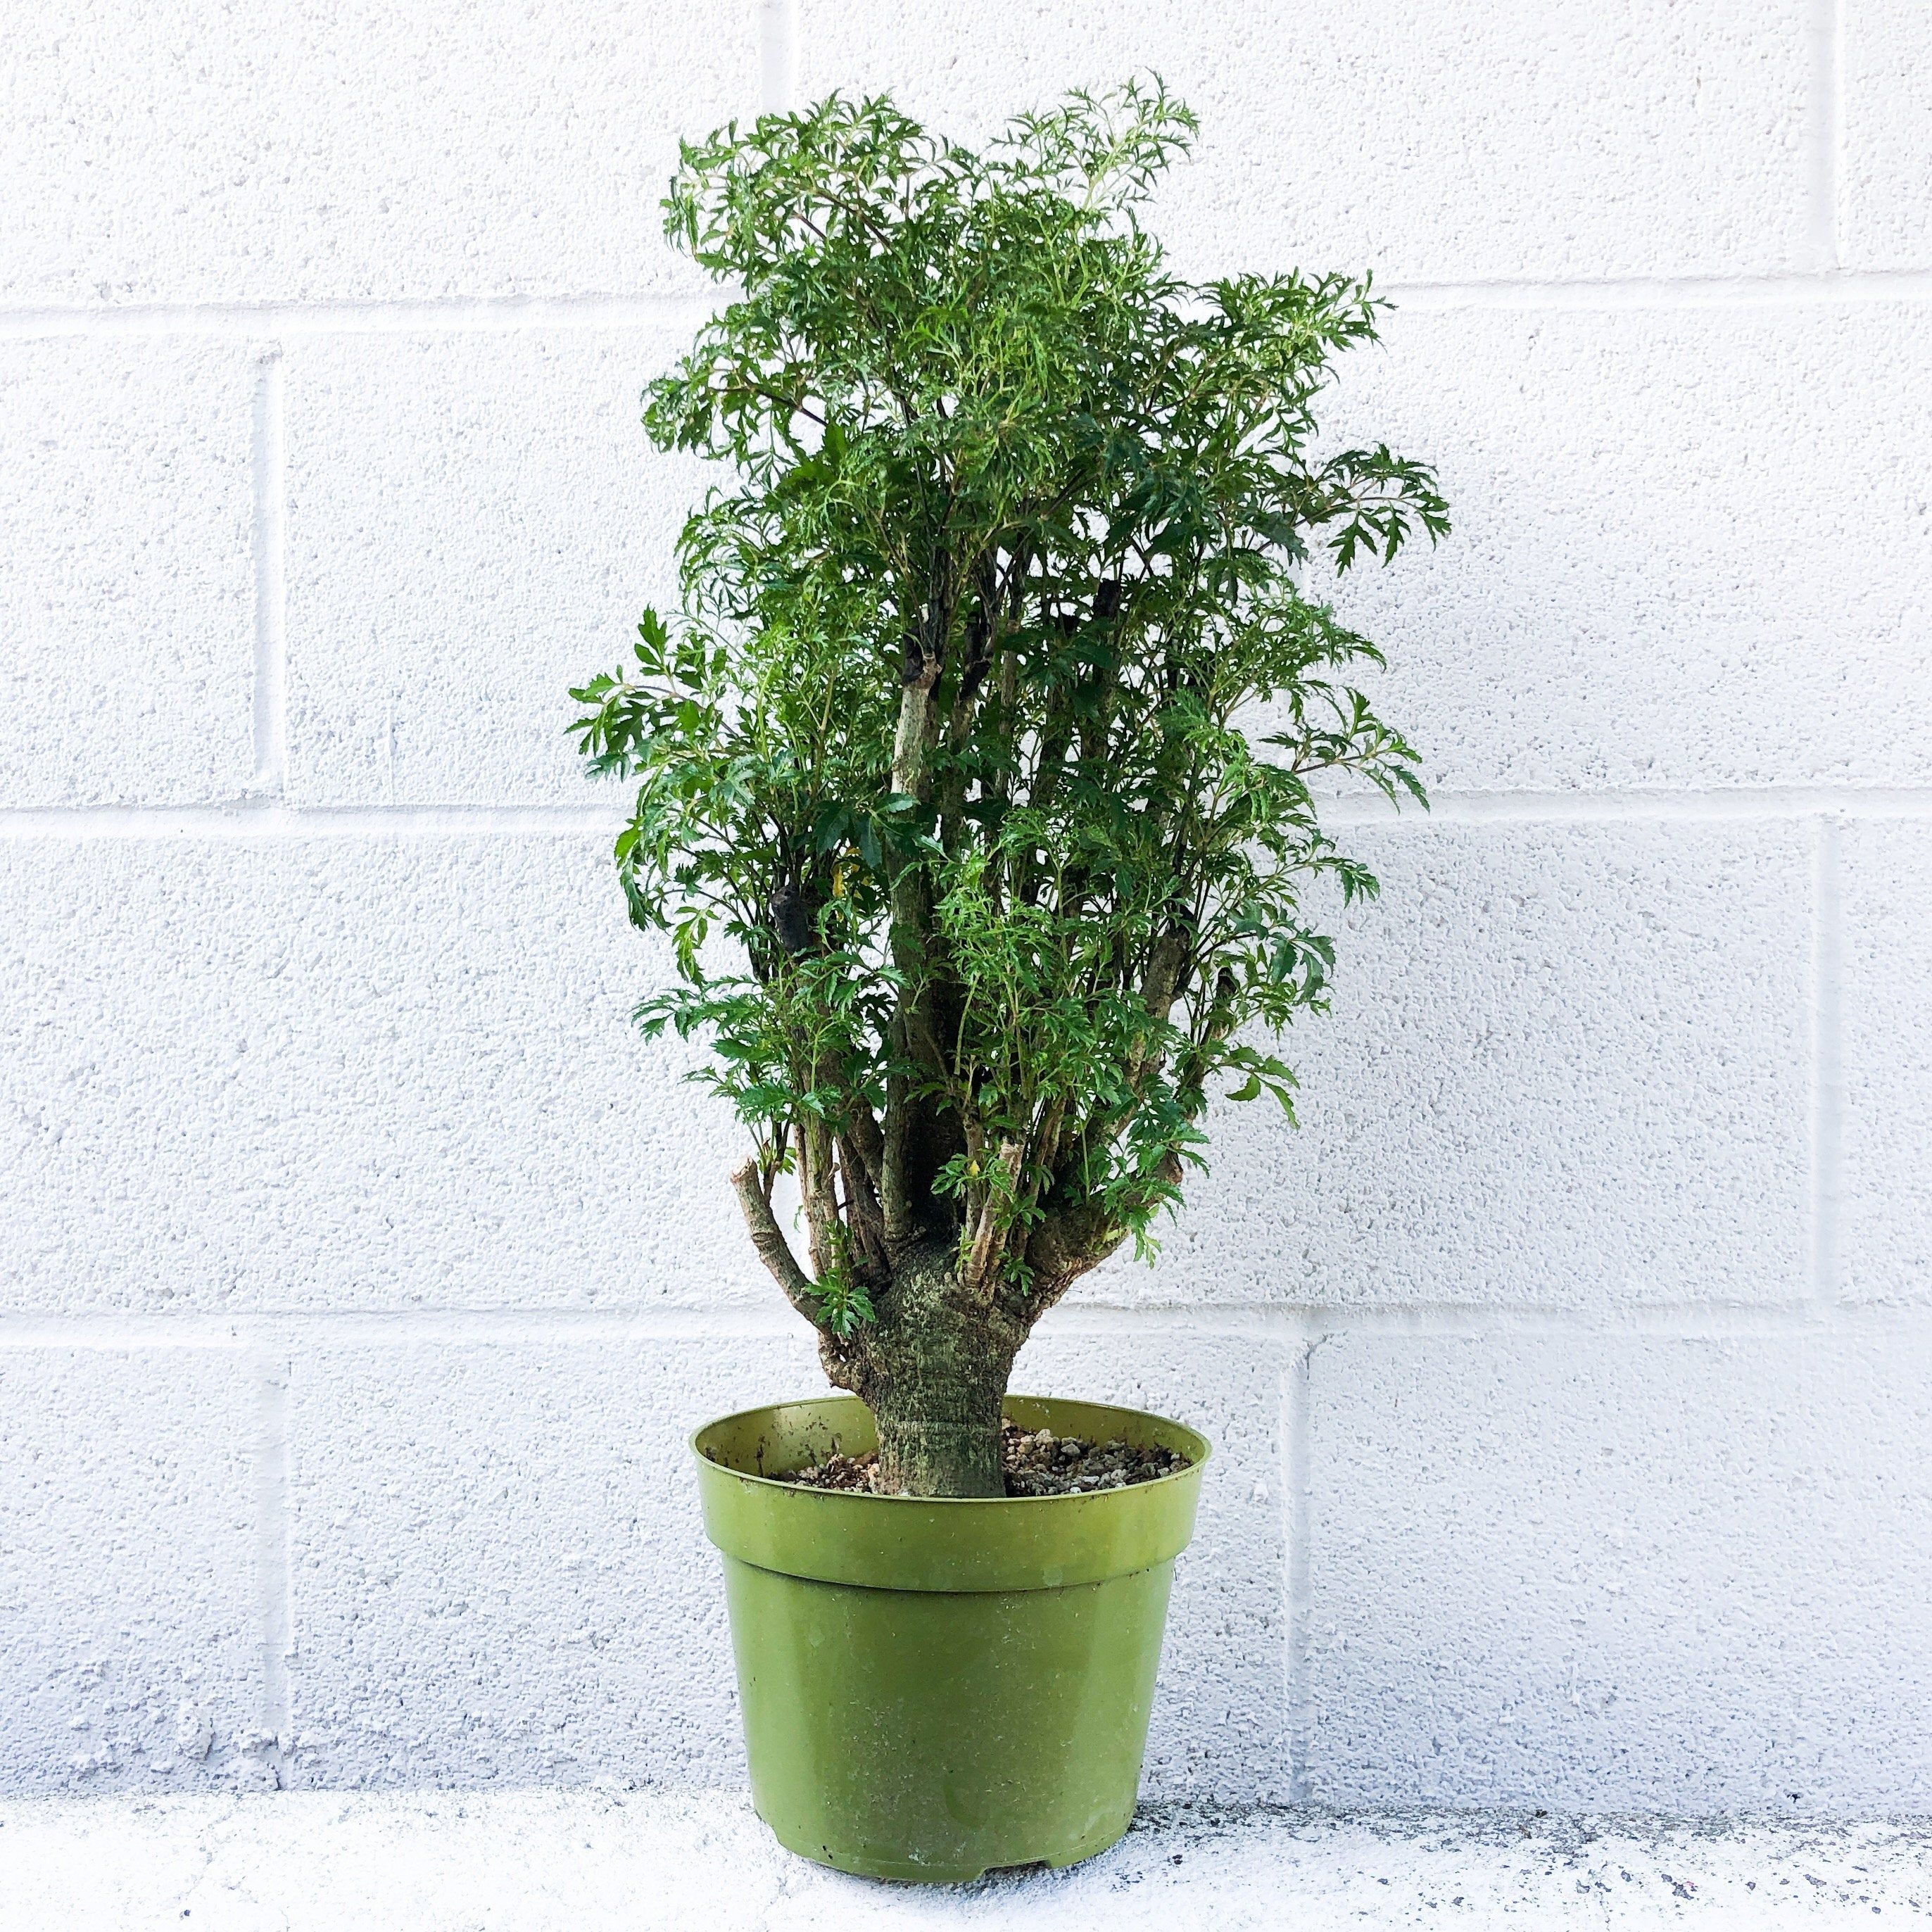 Houseplants That Can Survive Low Light